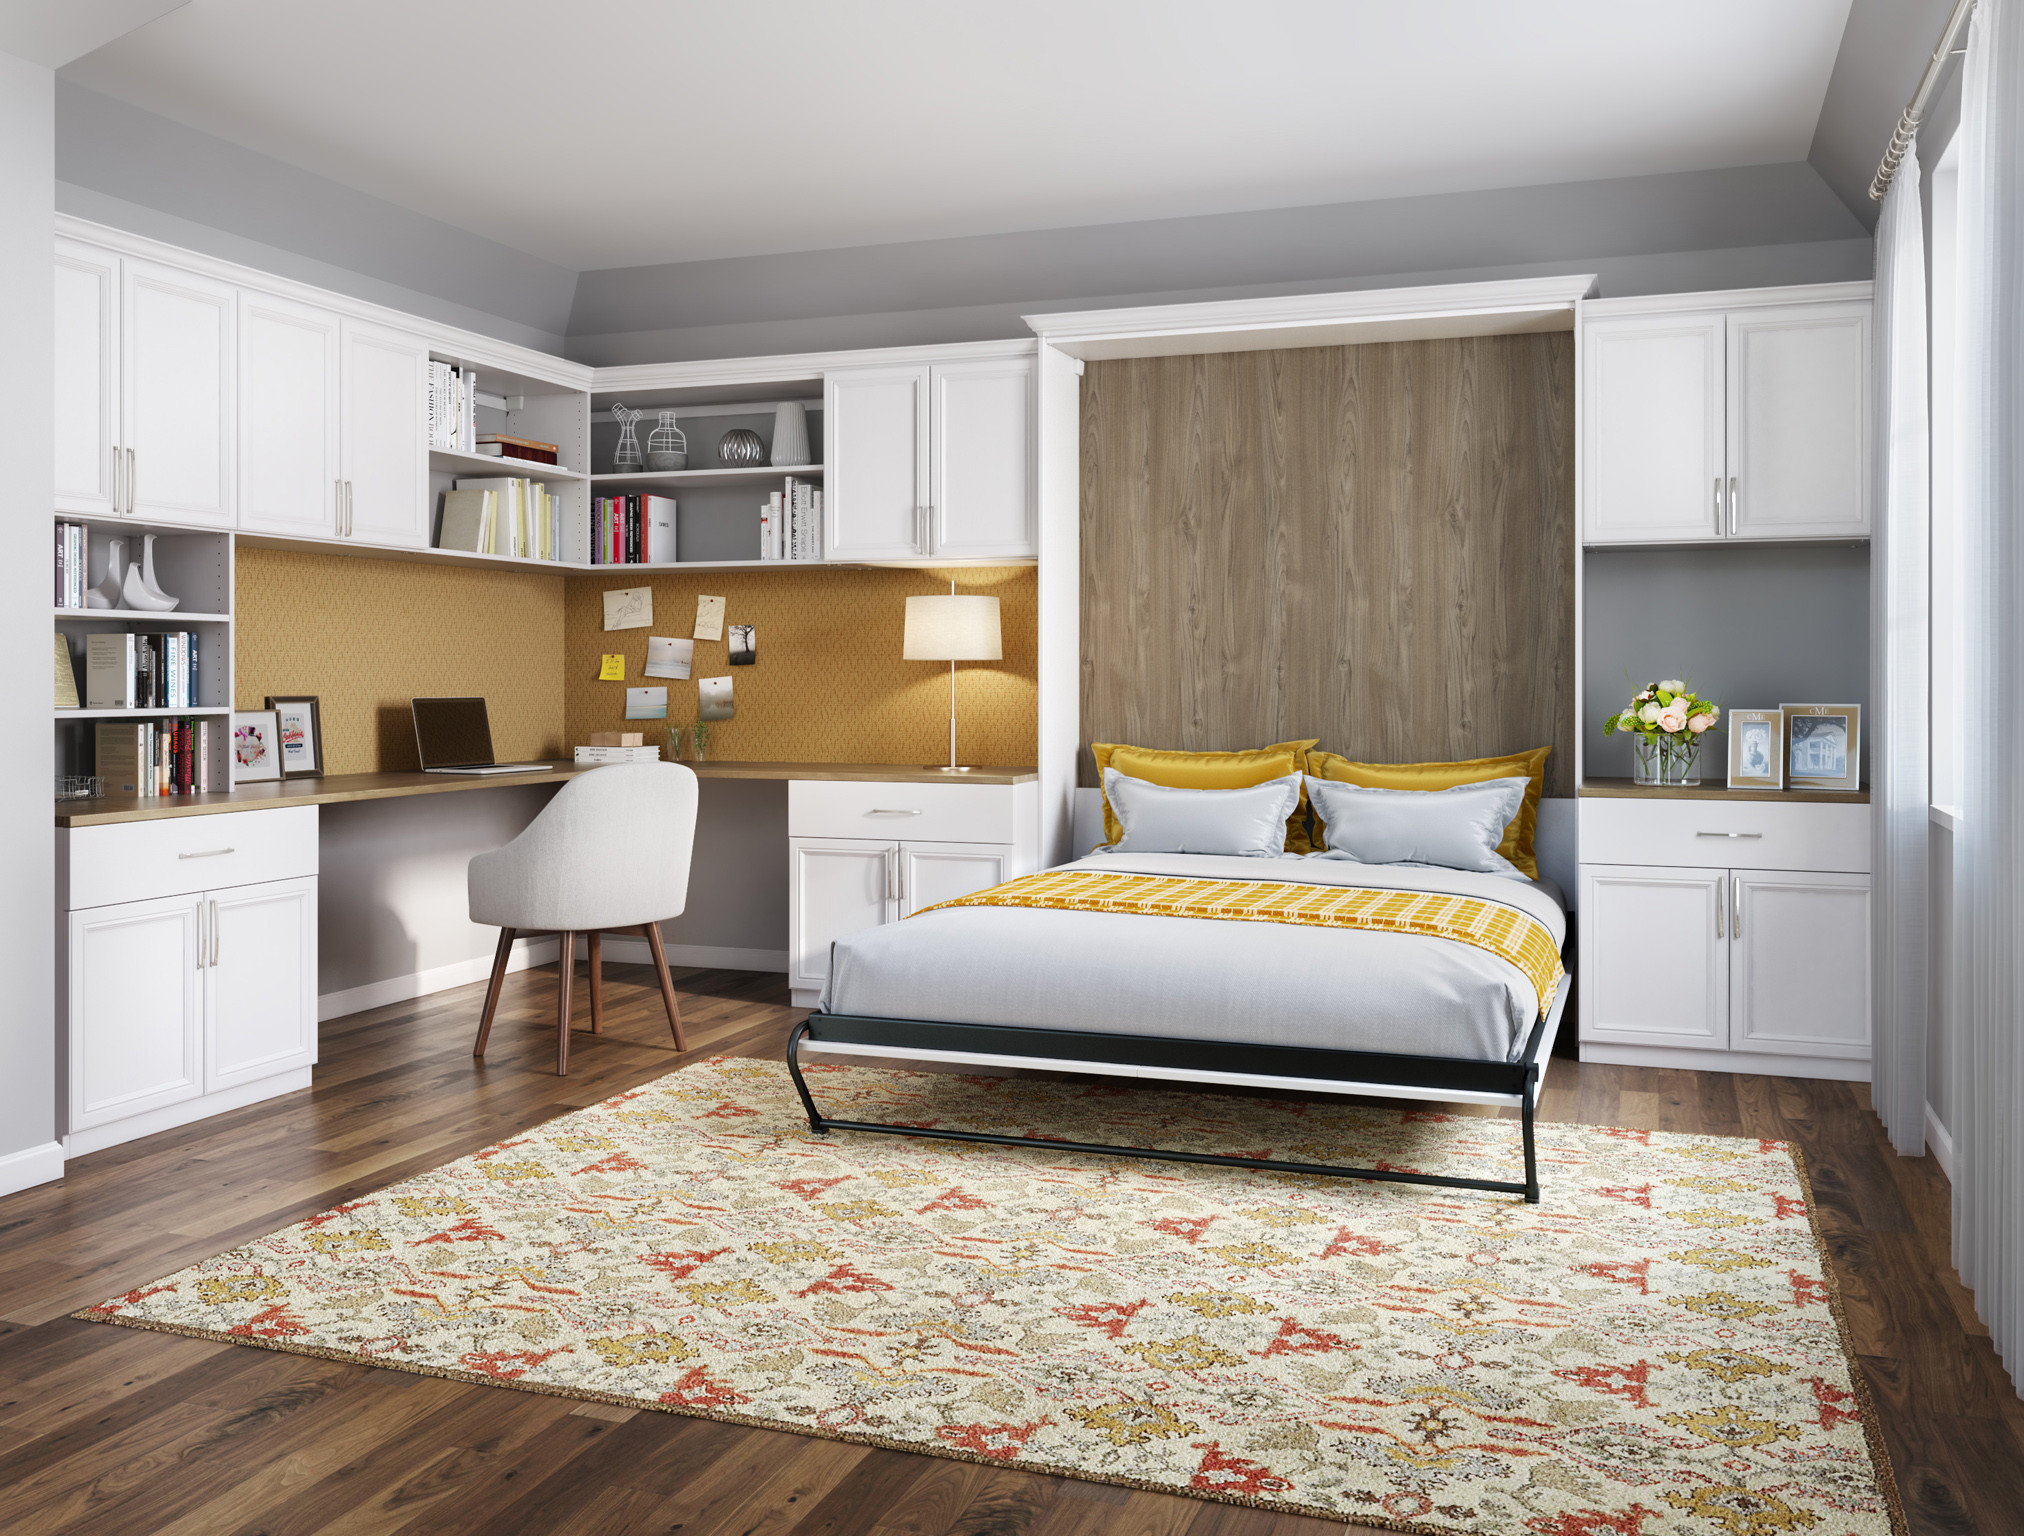 California Closets Birmingham: Campbell Convertible Office with Murphy Bed Solution